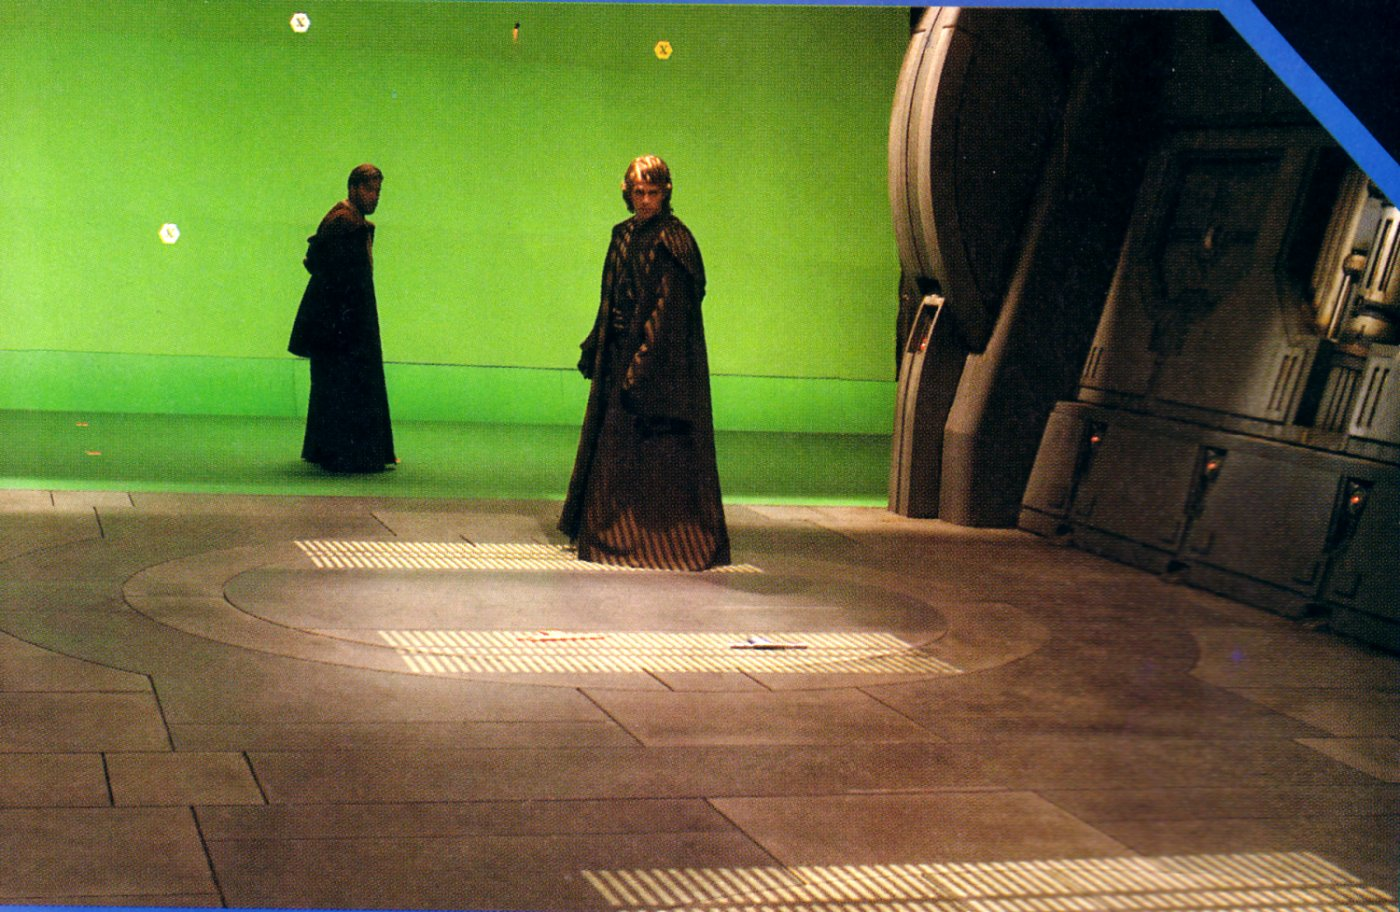 Behind The Scenes Magazines Scans Star Wars Episode Iii Revenge Of The Sith Bts Scans 001 Ewanmcgregor Net Gallery